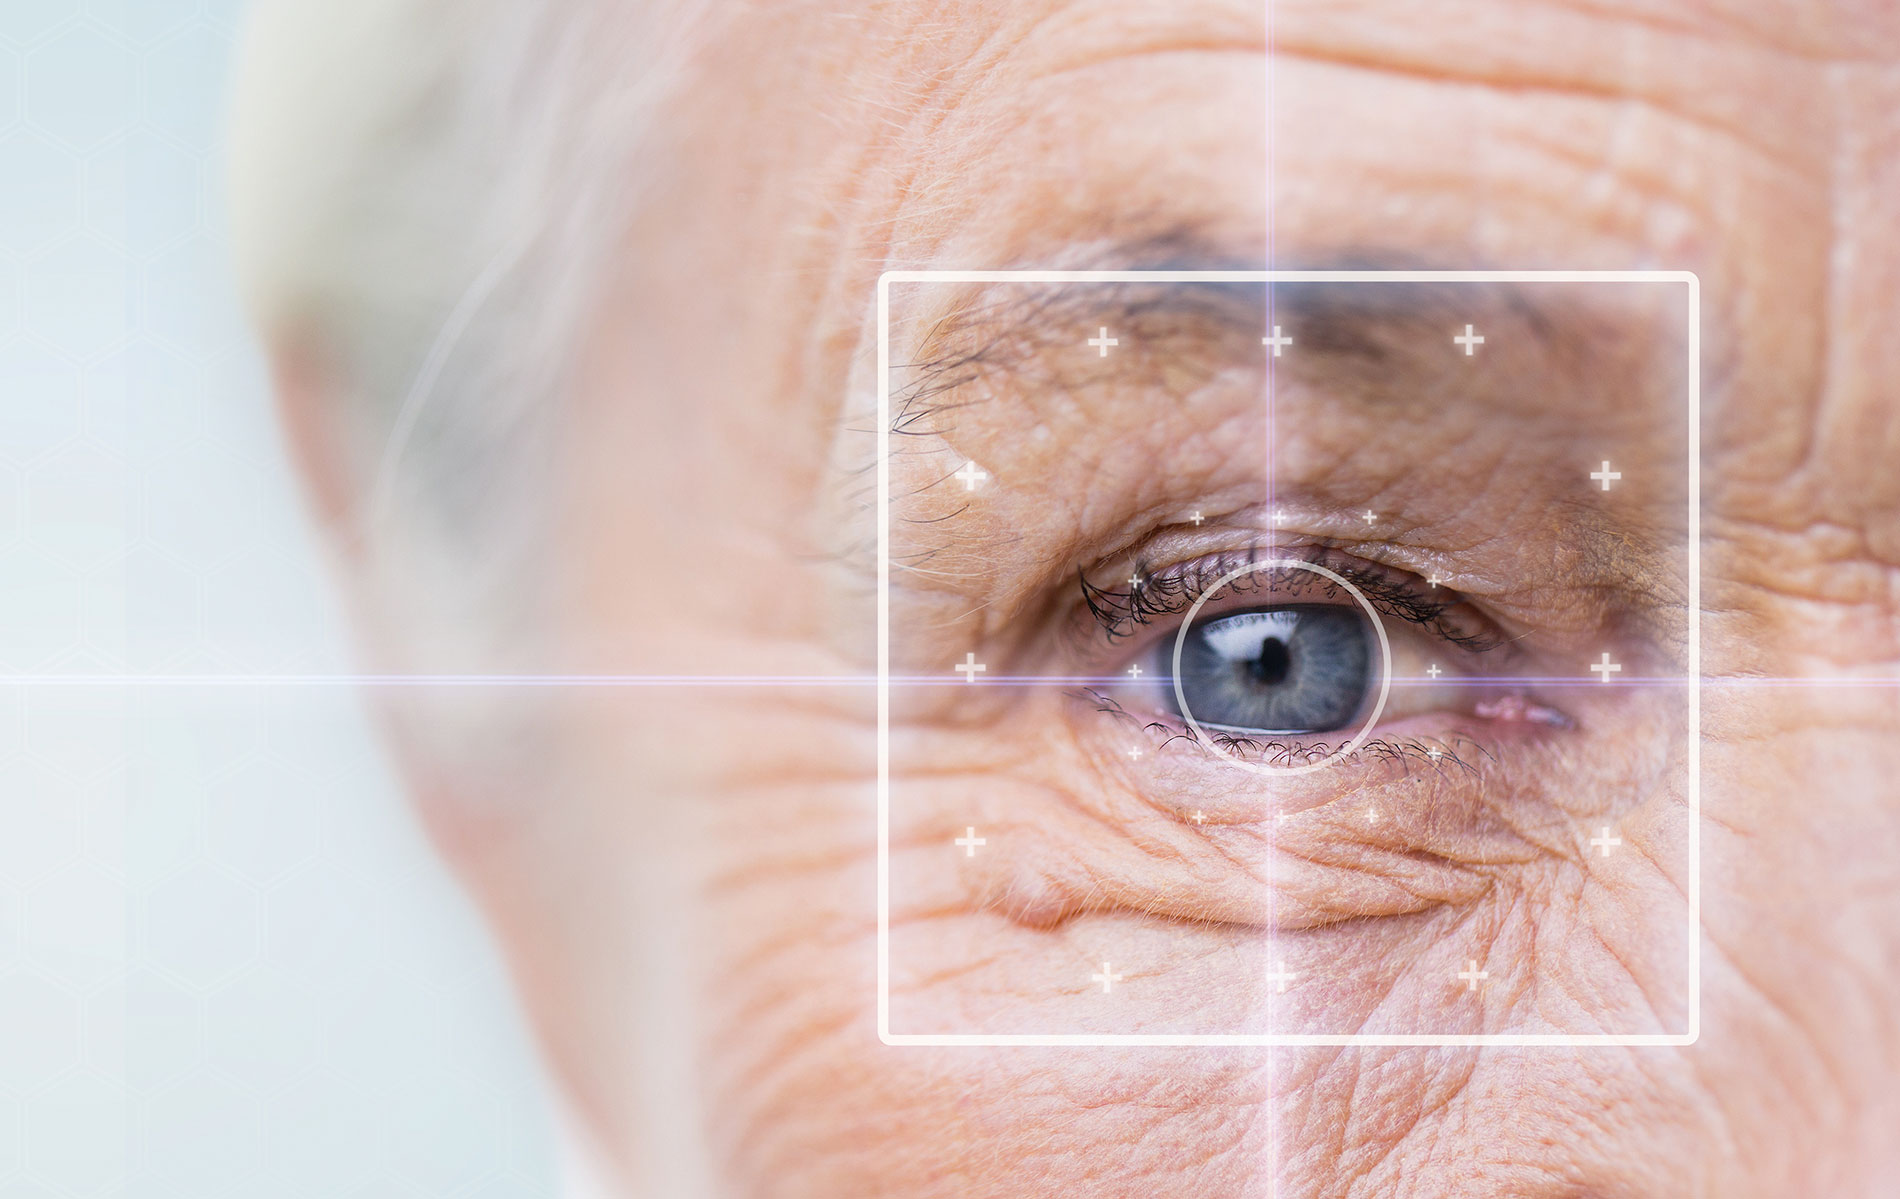 Close-up of an eye of an older person, with a box around the eye